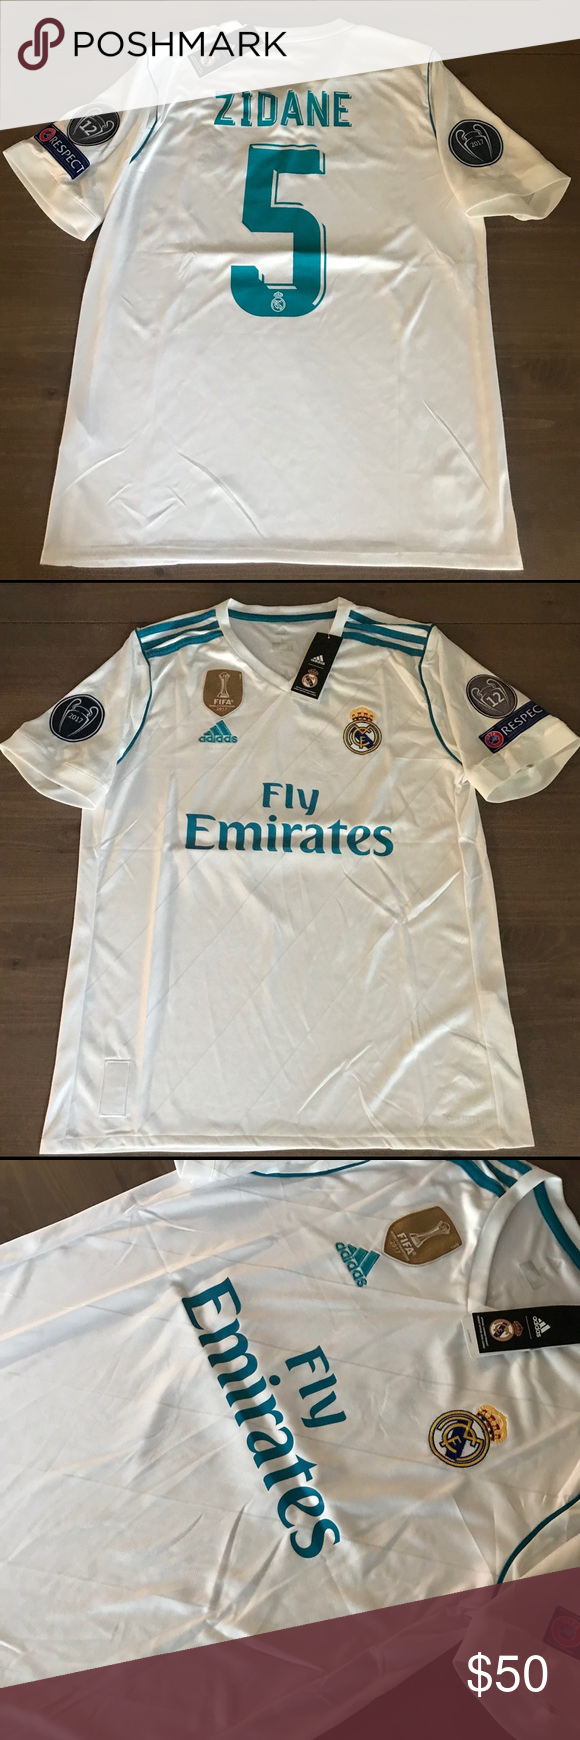 meet 83223 5c8db Real Madrid white Zidane #5 adidas Soccer Jersey Real Madrid ...